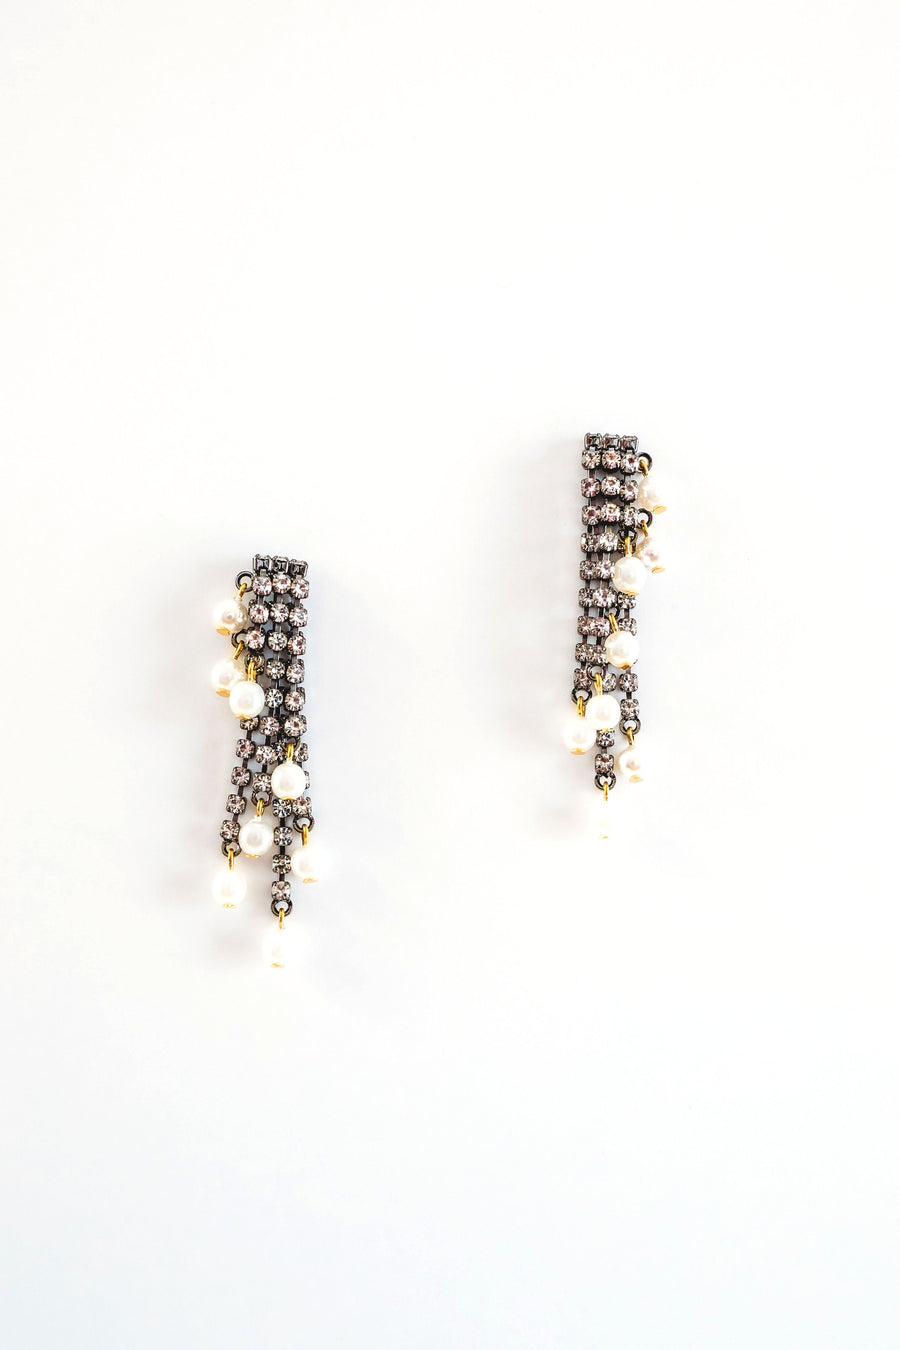 Tressor Earrings